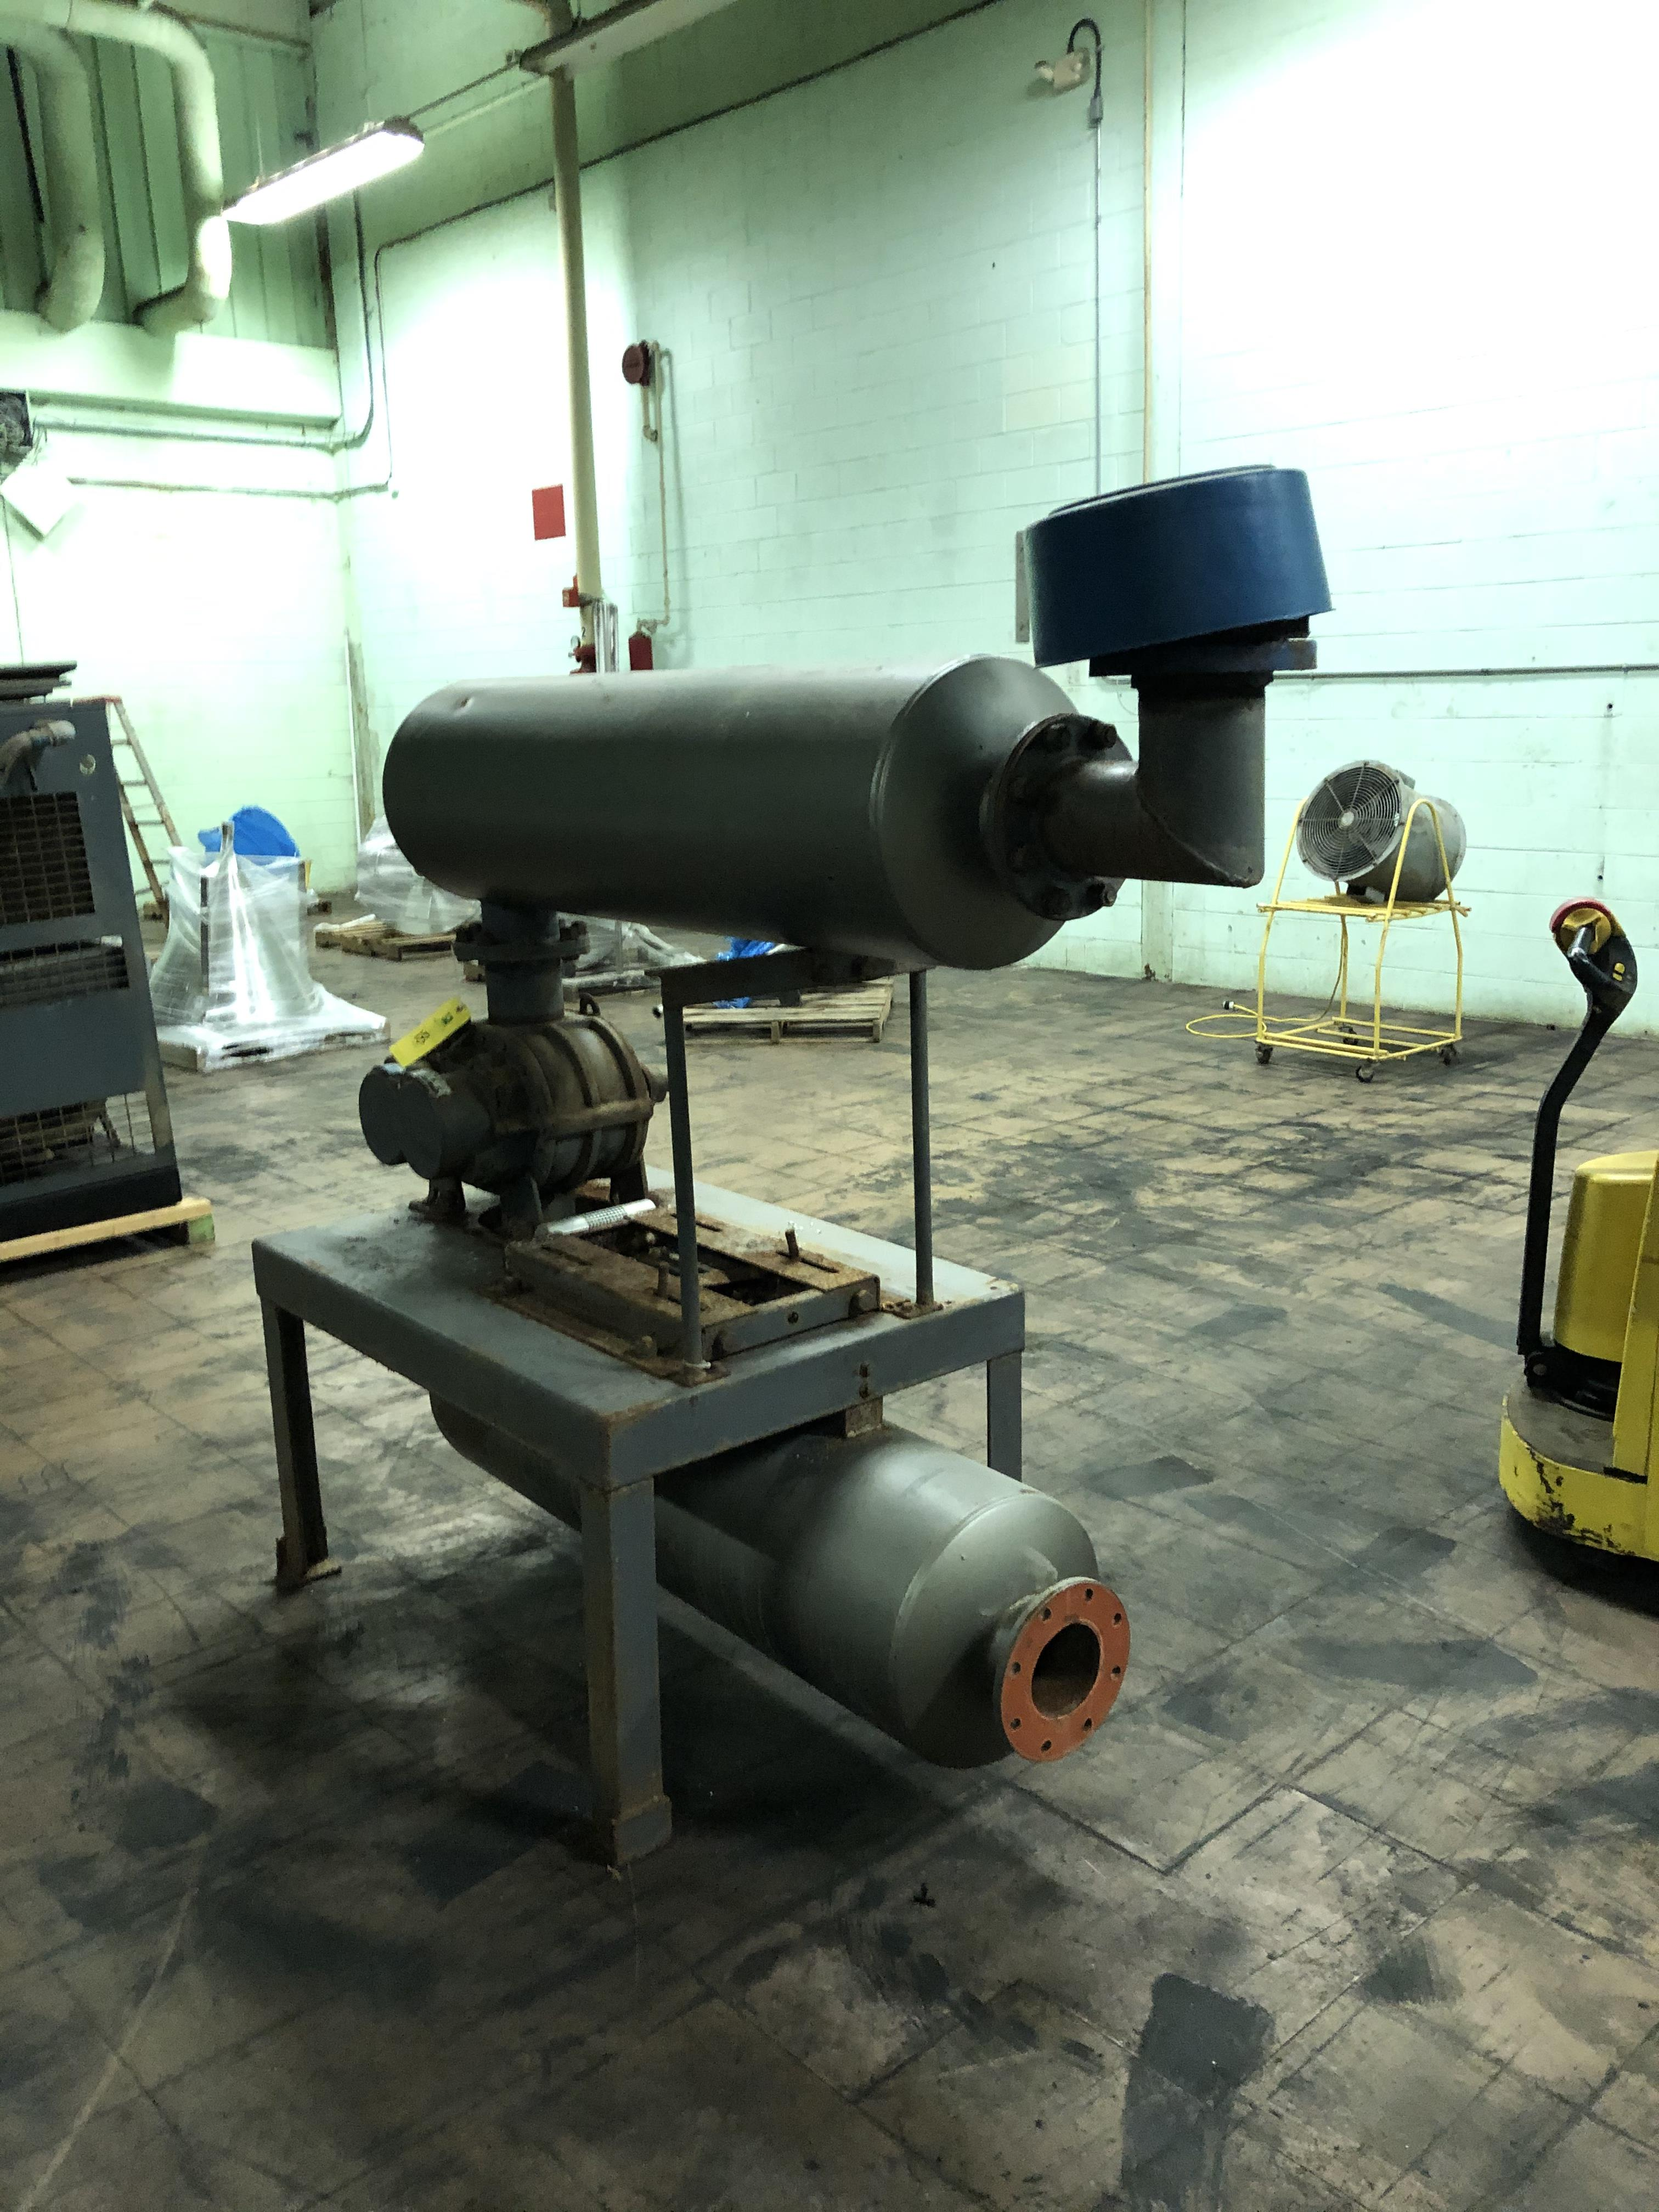 Tuthill Corp. Model #6008-21L2 Vacuum Pump, Tanks, Stand, Note - No Motor, RIGGING FEE - $150